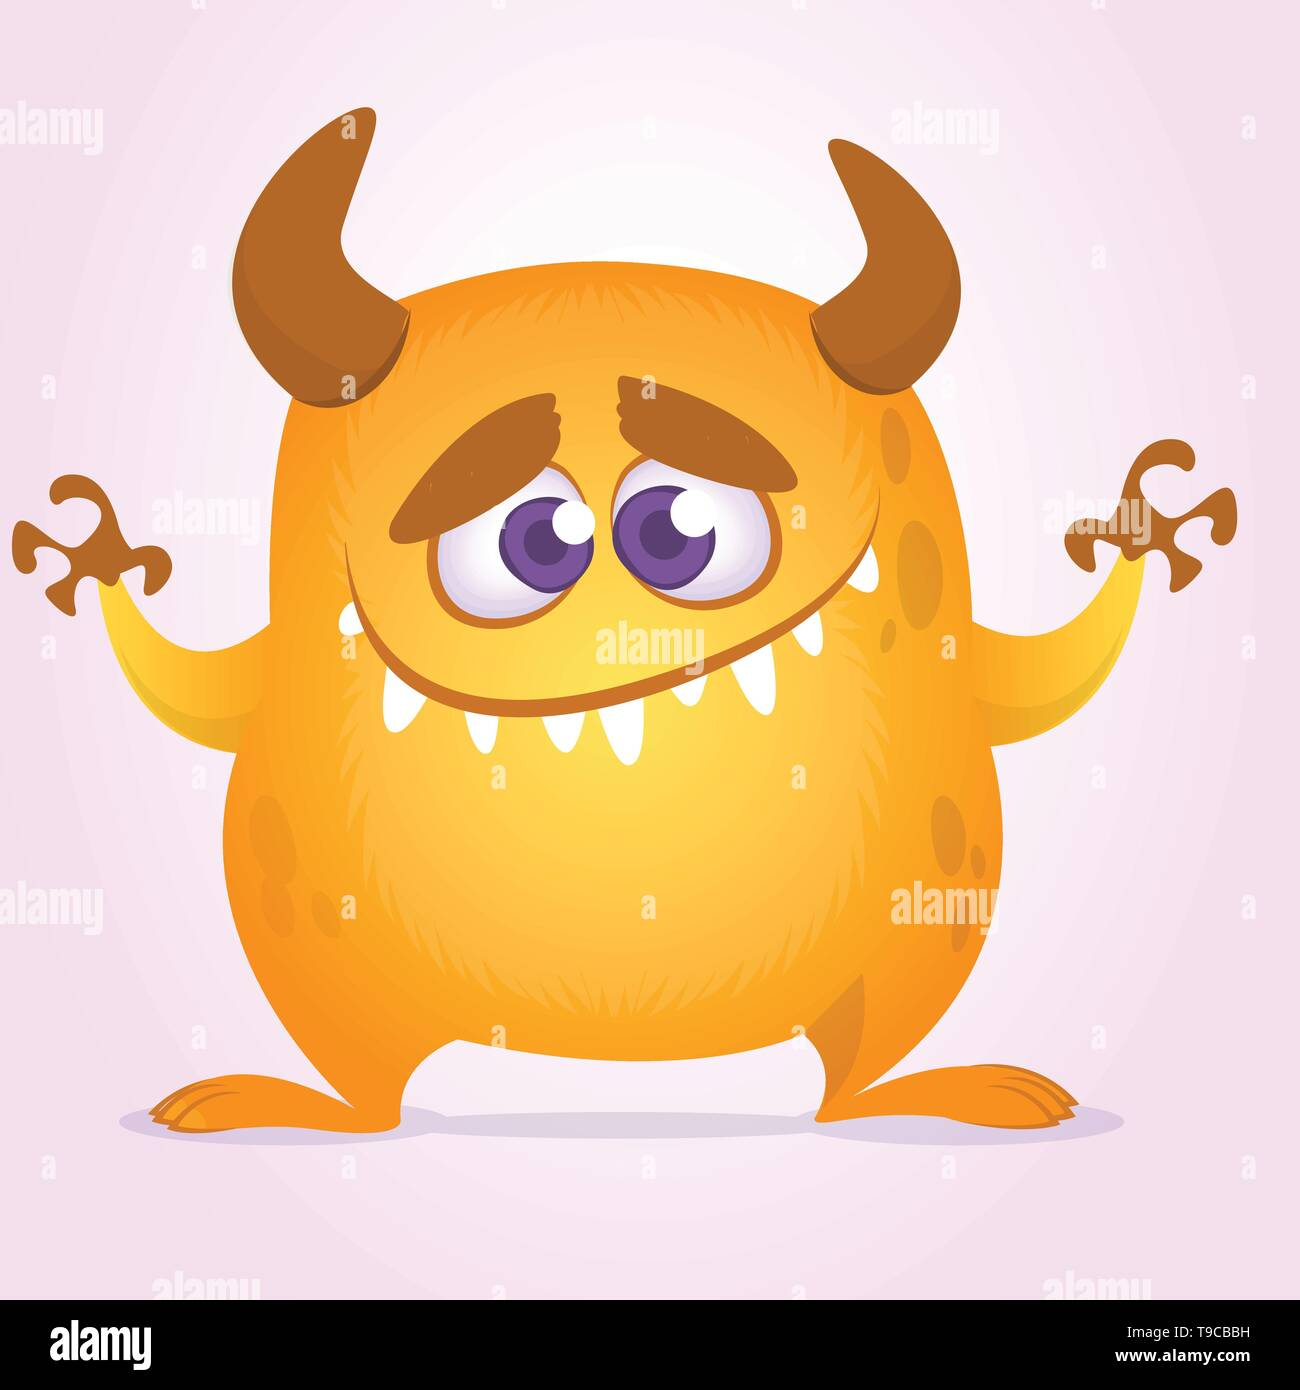 Happy cute cartoon monster with horns. Vector orange monster illustration. Halloween character. Design for decoration, print or sticker - Stock Image